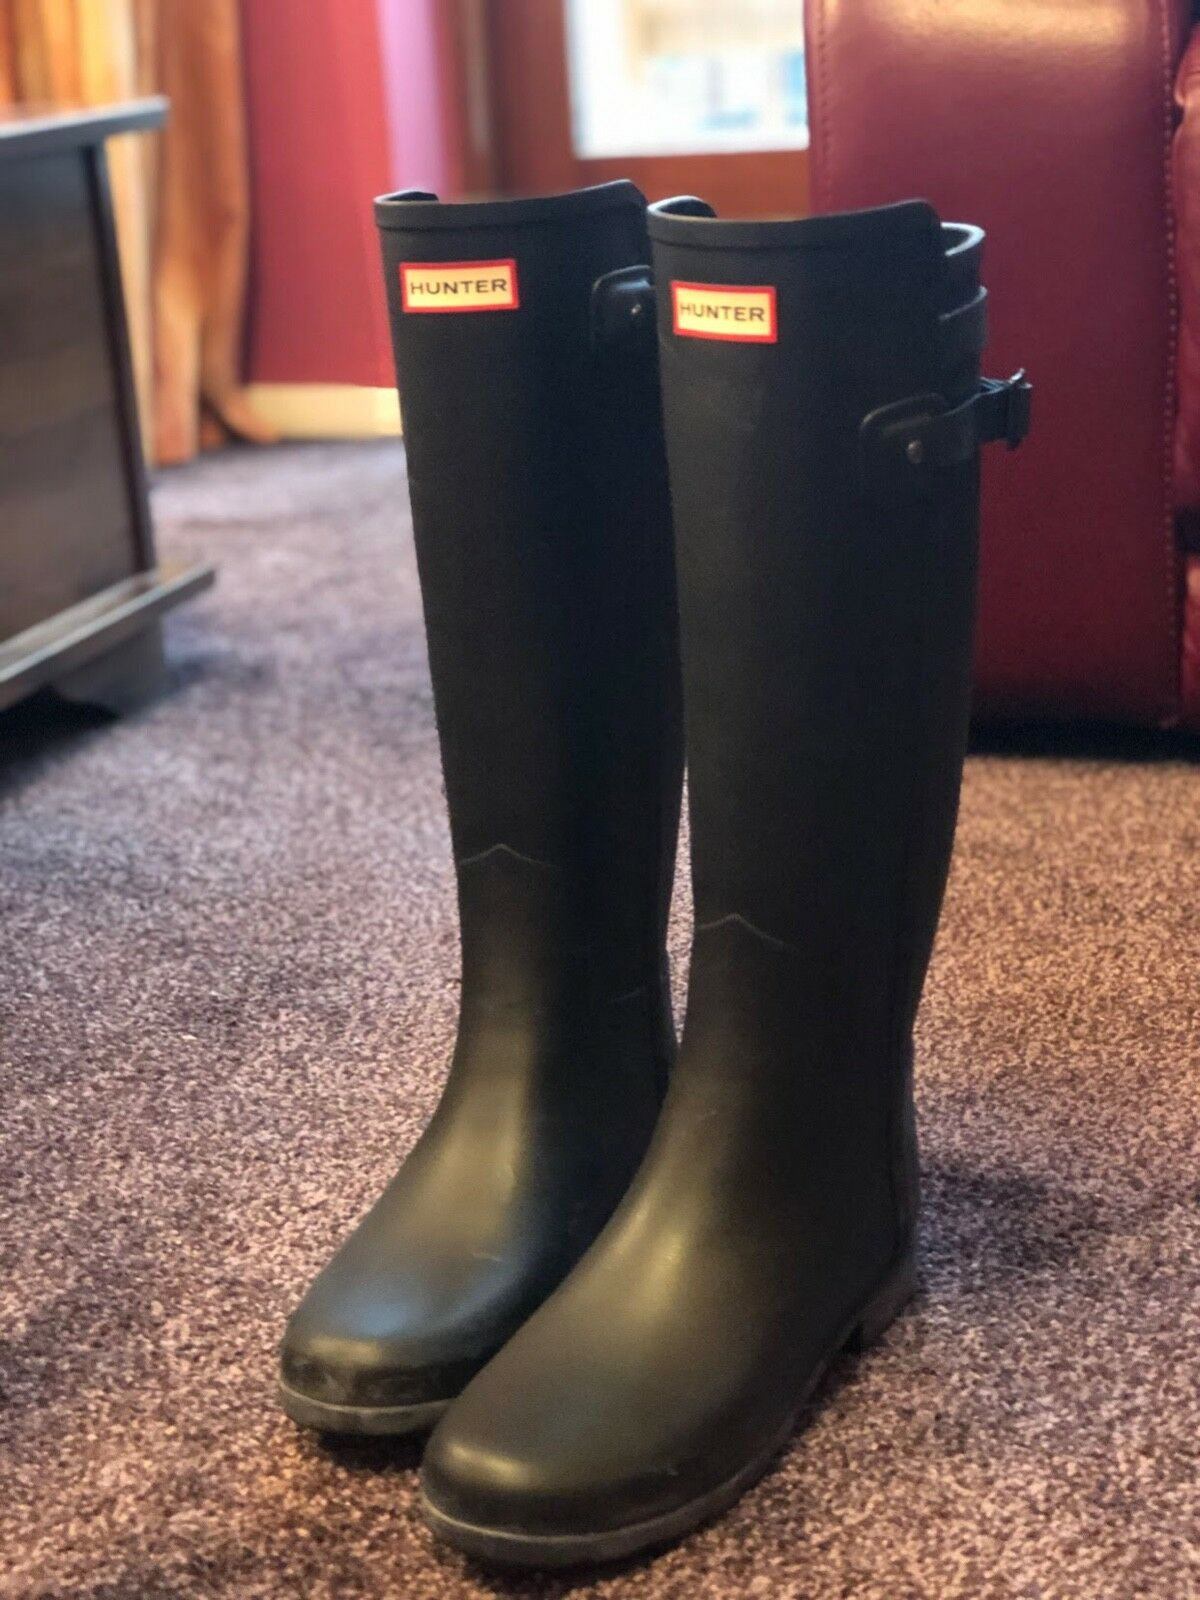 HUNTER Knee High Wellington Boots Size 40 UK 7 Logo Buckle Strap Details Pull On